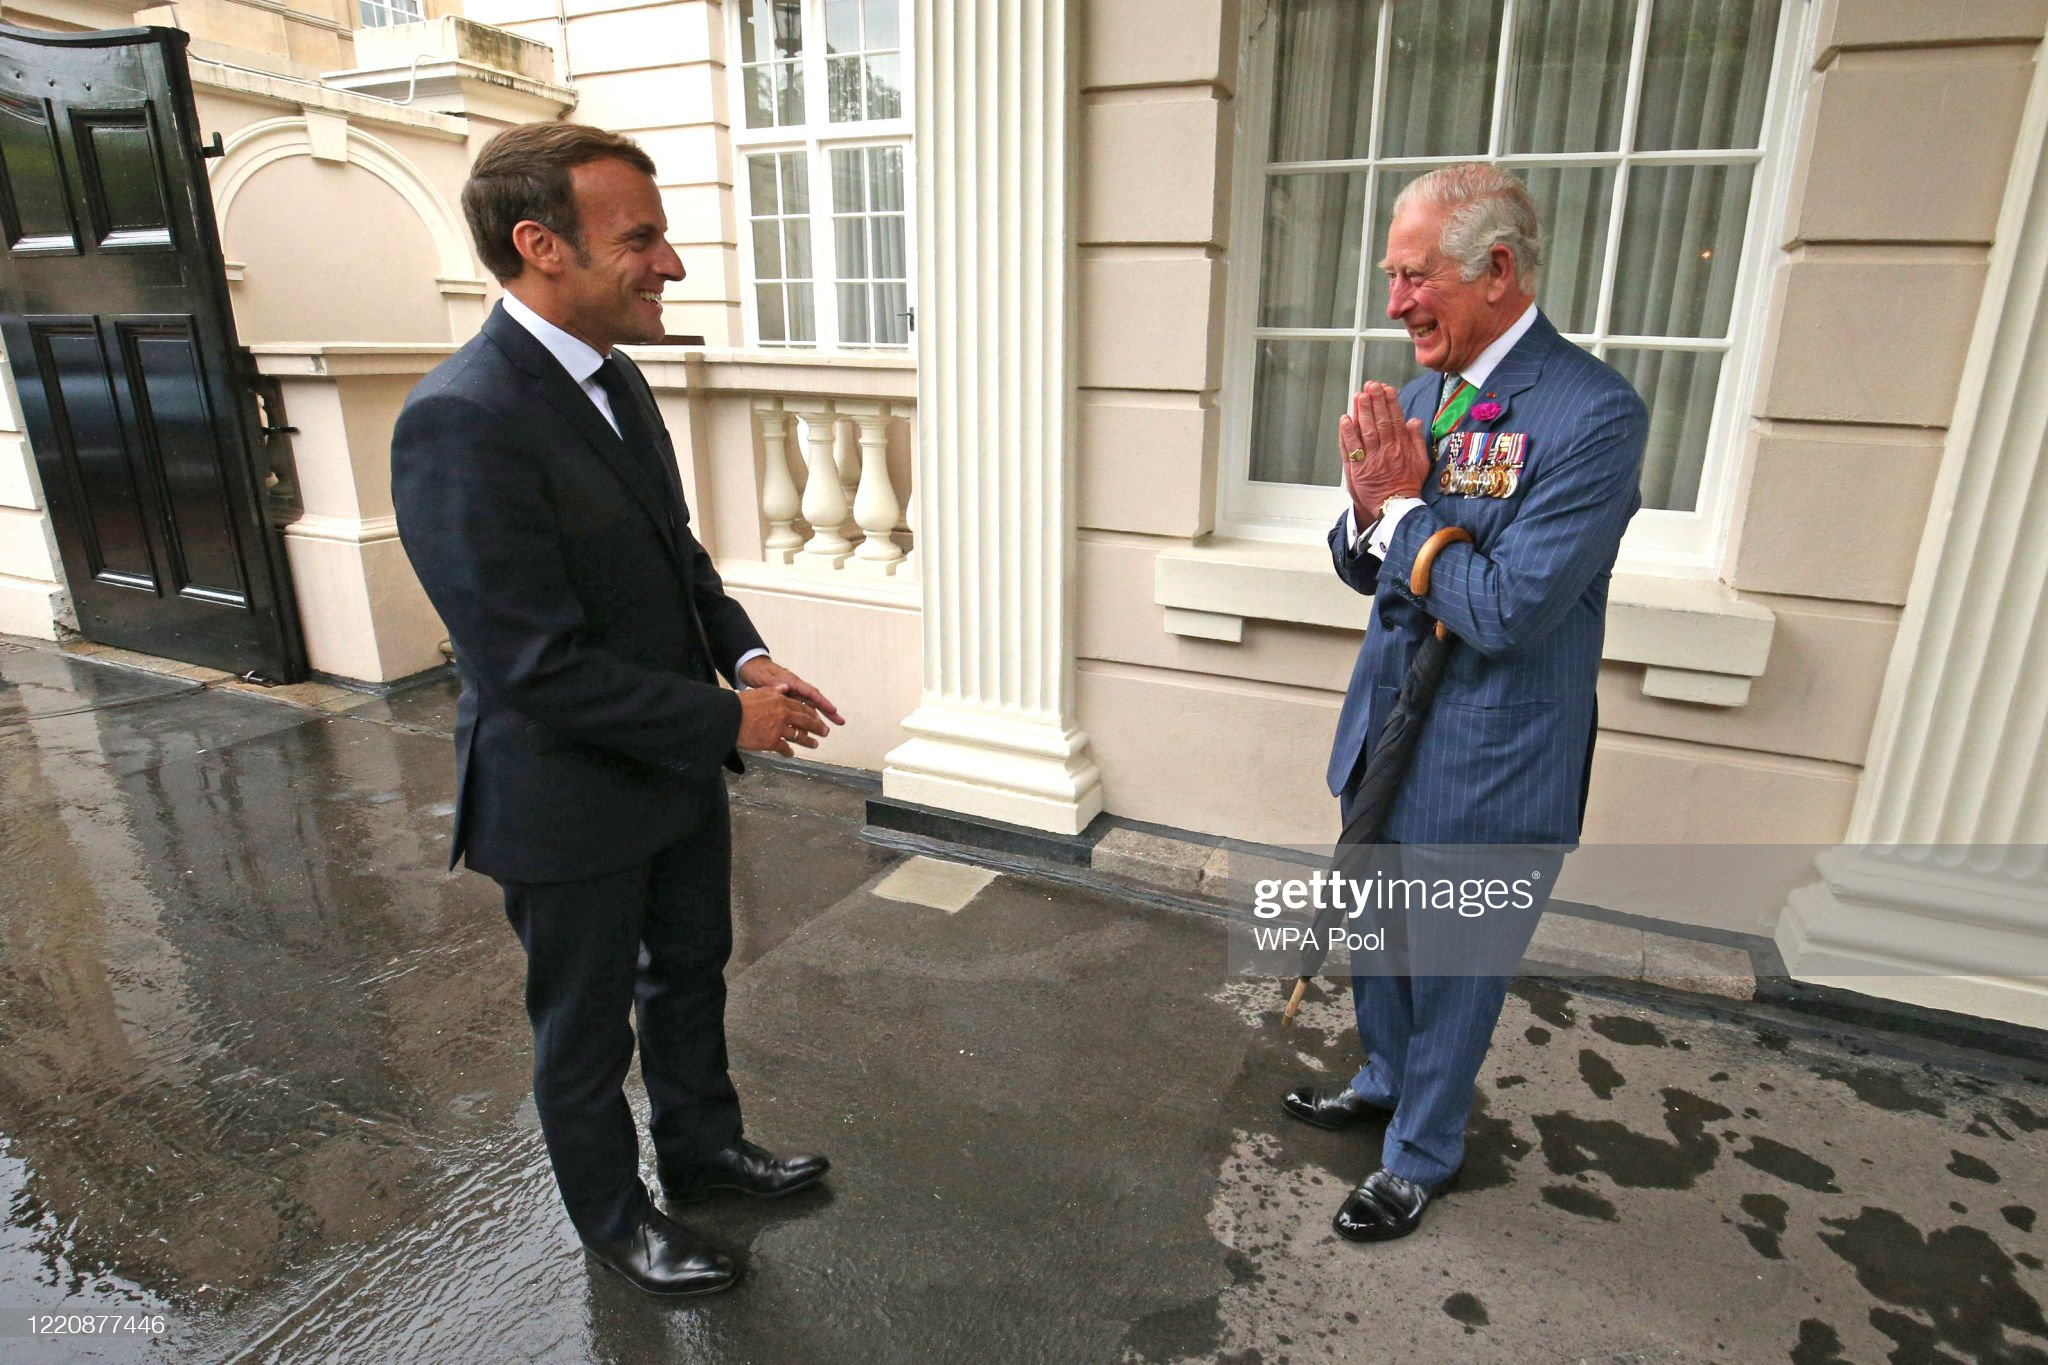 prince-charles-prince-of-wales-greets-french-president-emmanuel-with-picture-id1220877446